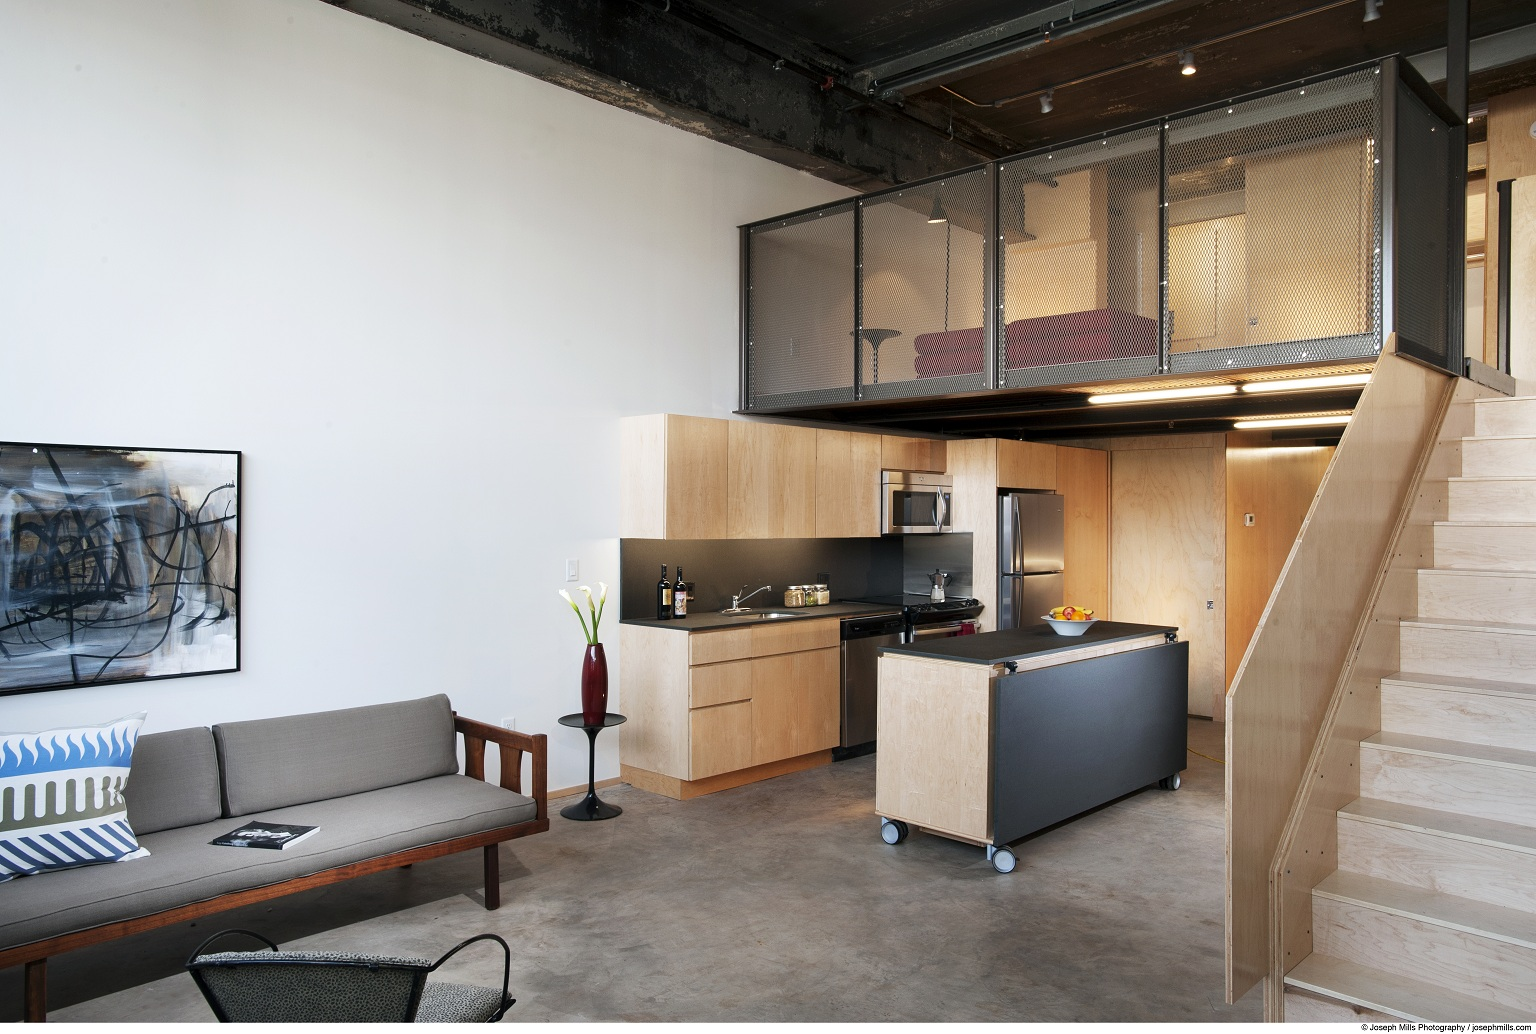 Guardian Lofts  Architect Magazine  Oklahoma City United States Multifamily Adaptive Reuse